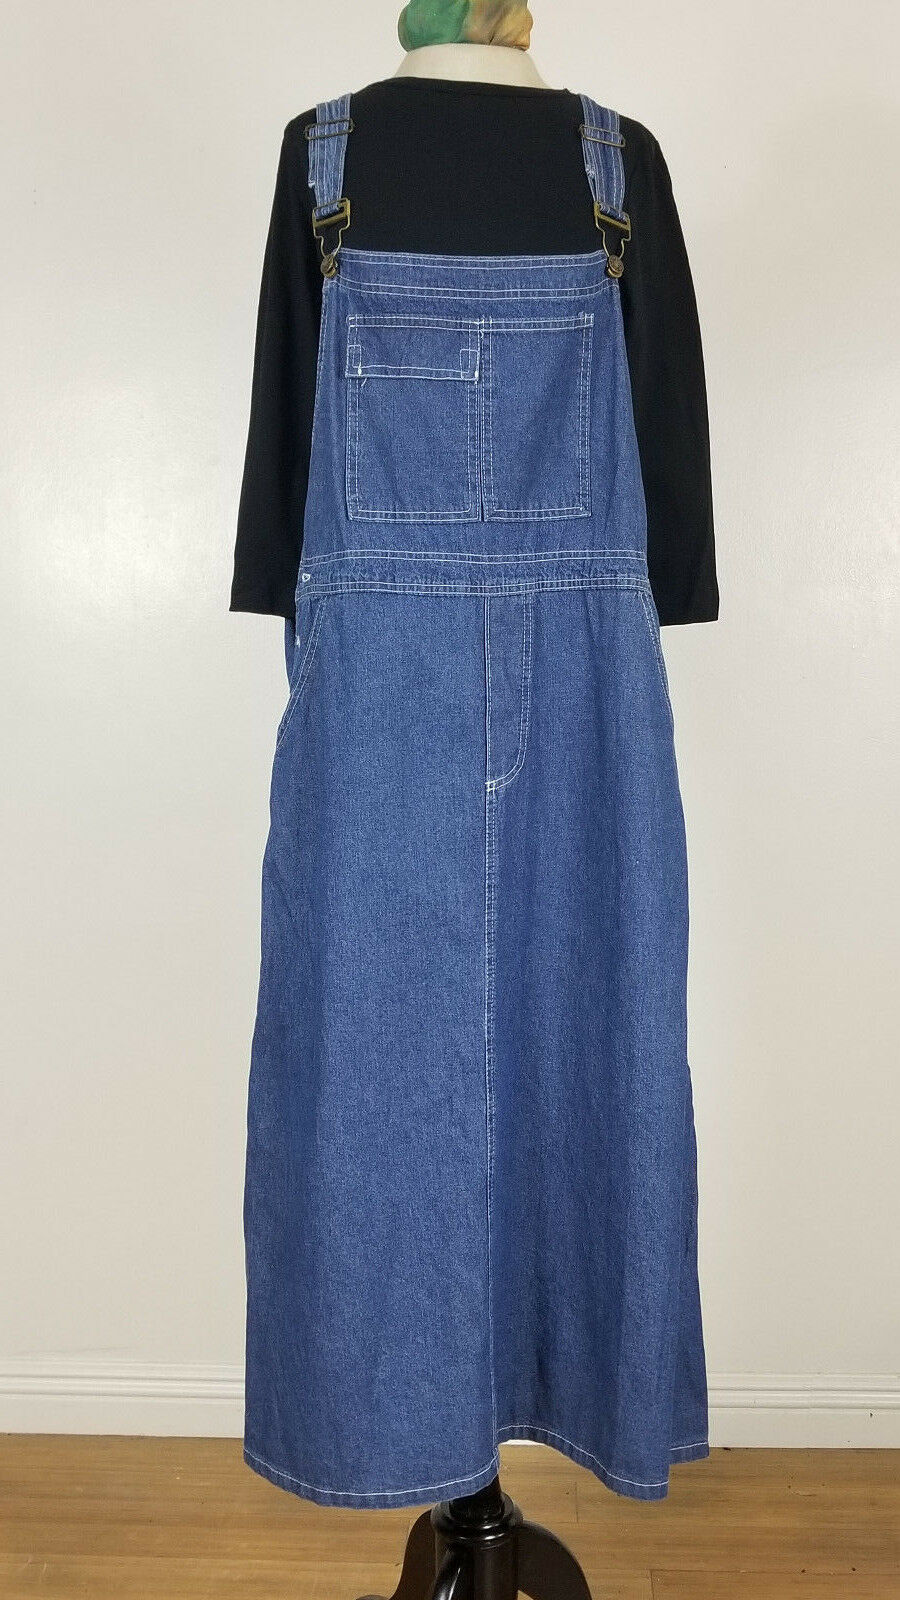 Modest denim jumper A Line Denim Carpentar Jumper For 4 modesty